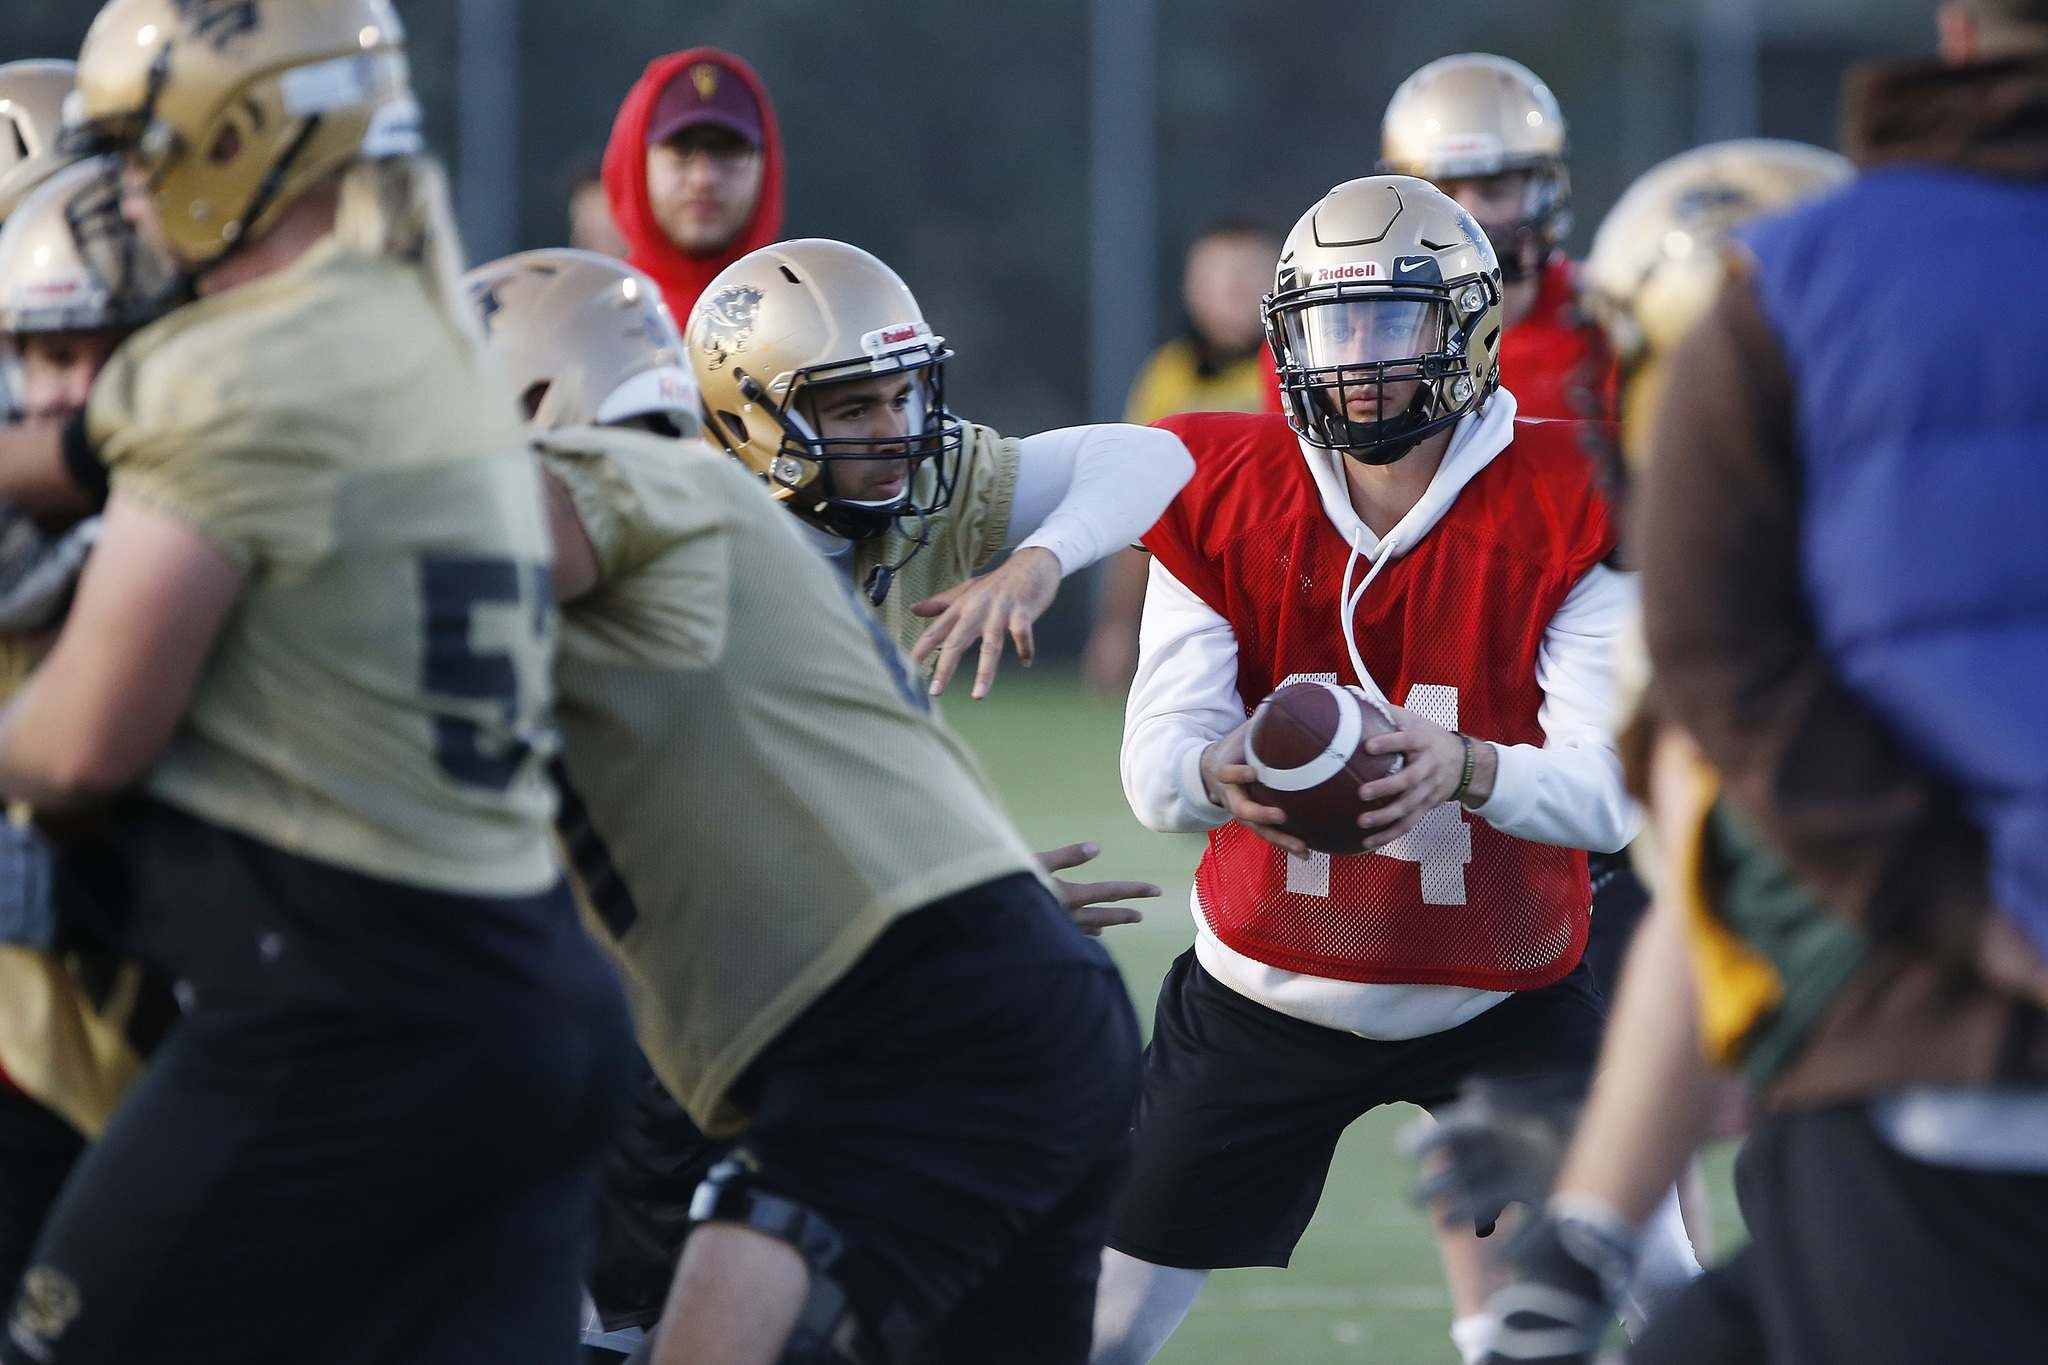 When the Bisons took a break from workouts in July, Tachinski enrolled in a series of off-season quarterback camps at NCAA Division 1 schools in the southern U.S. (John Woods / Winnipeg Free Press)